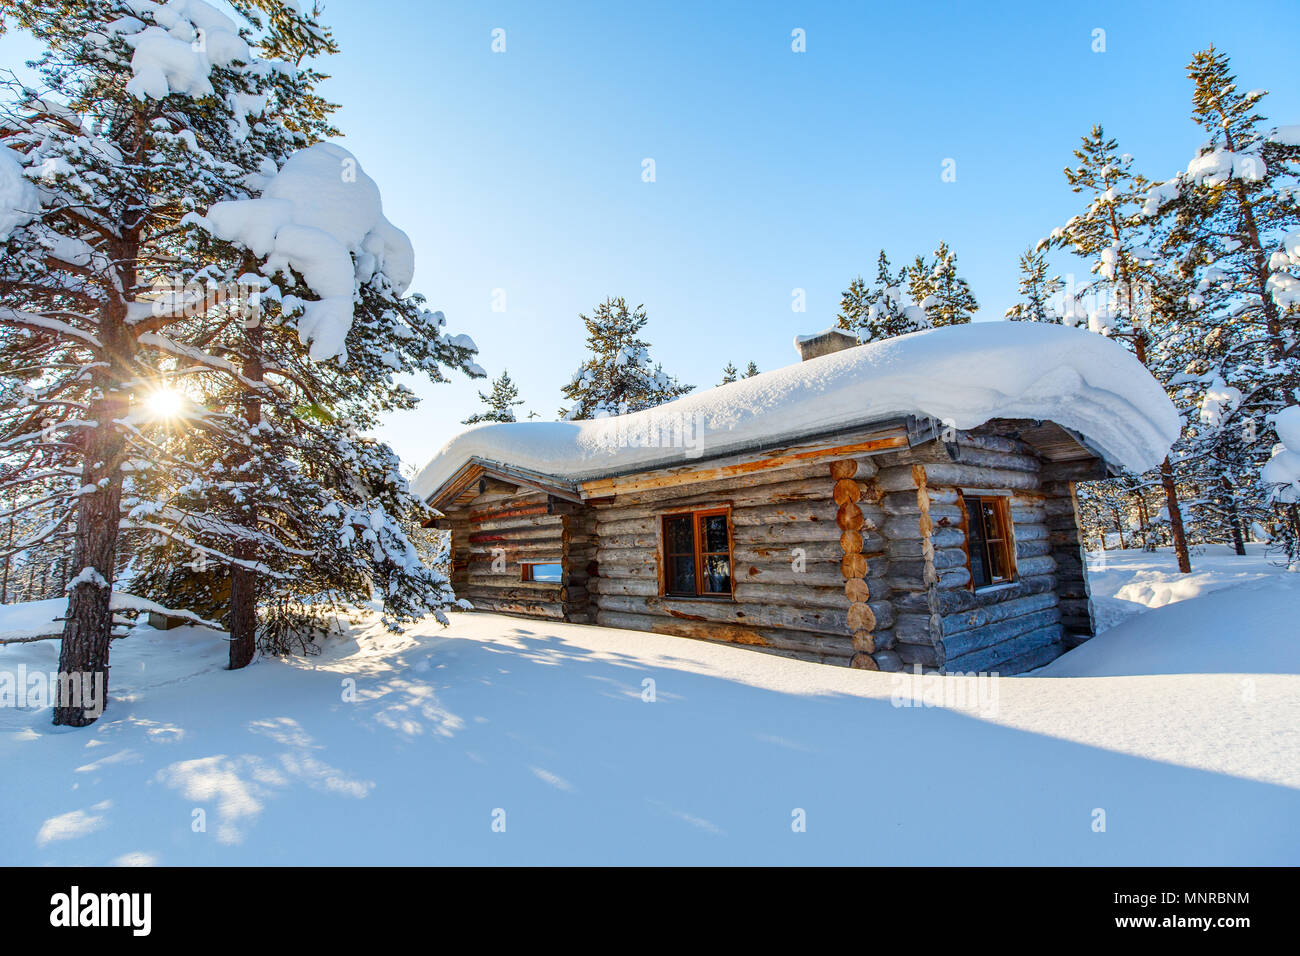 Beautiful winter landscape with wooden hut and snow covered trees Stock Photo